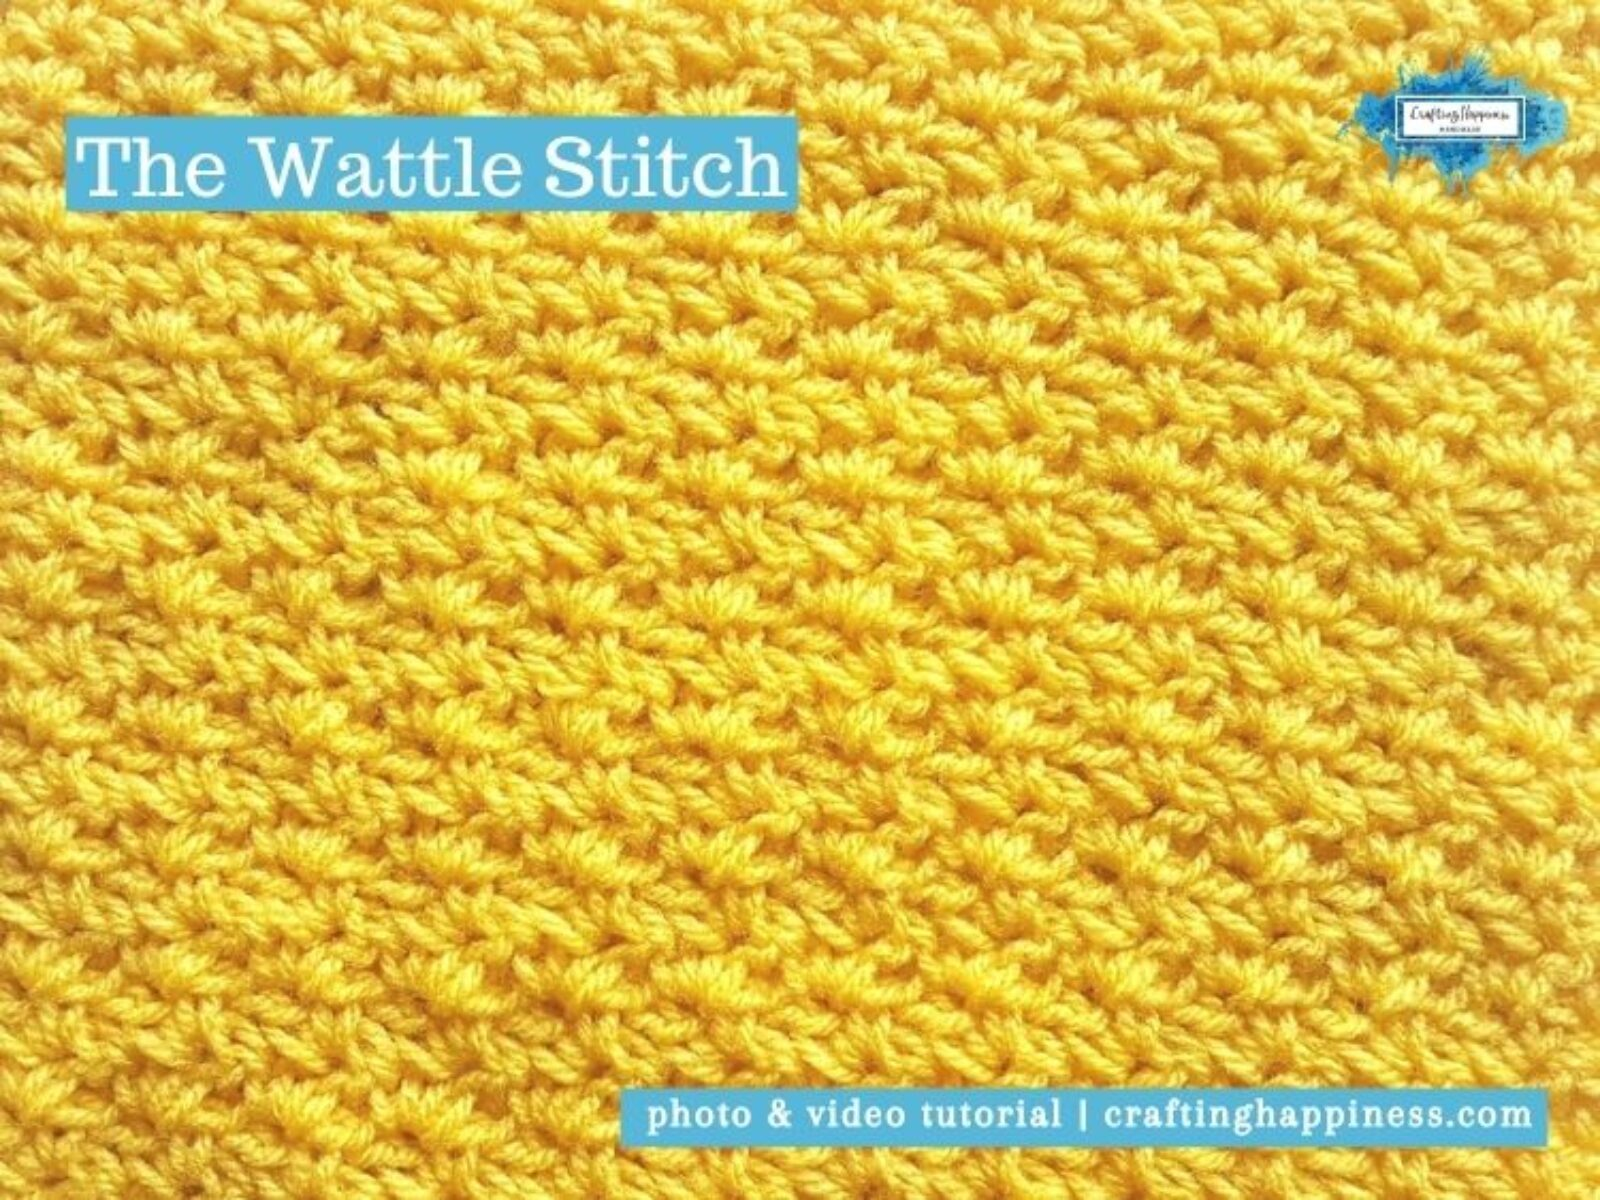 The Wattle Stitch by Crafting Happiness FACEBOOK POSTER